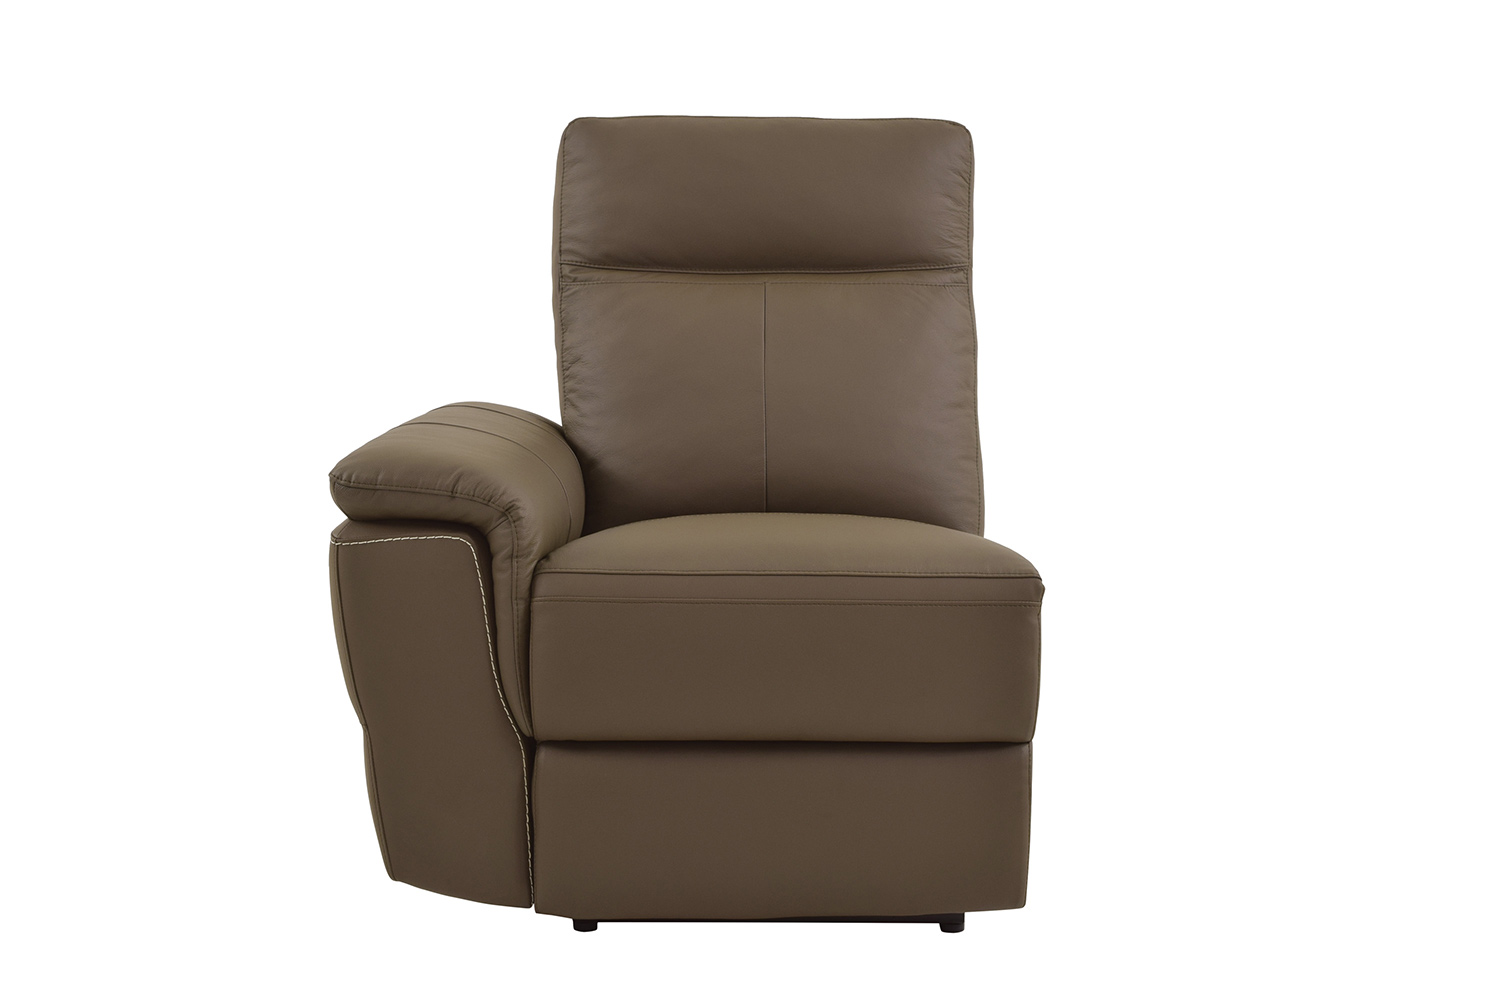 Homelegance Olympia Power Left Side Facing Reclining Chair - Raisin Top Grain Leather Match